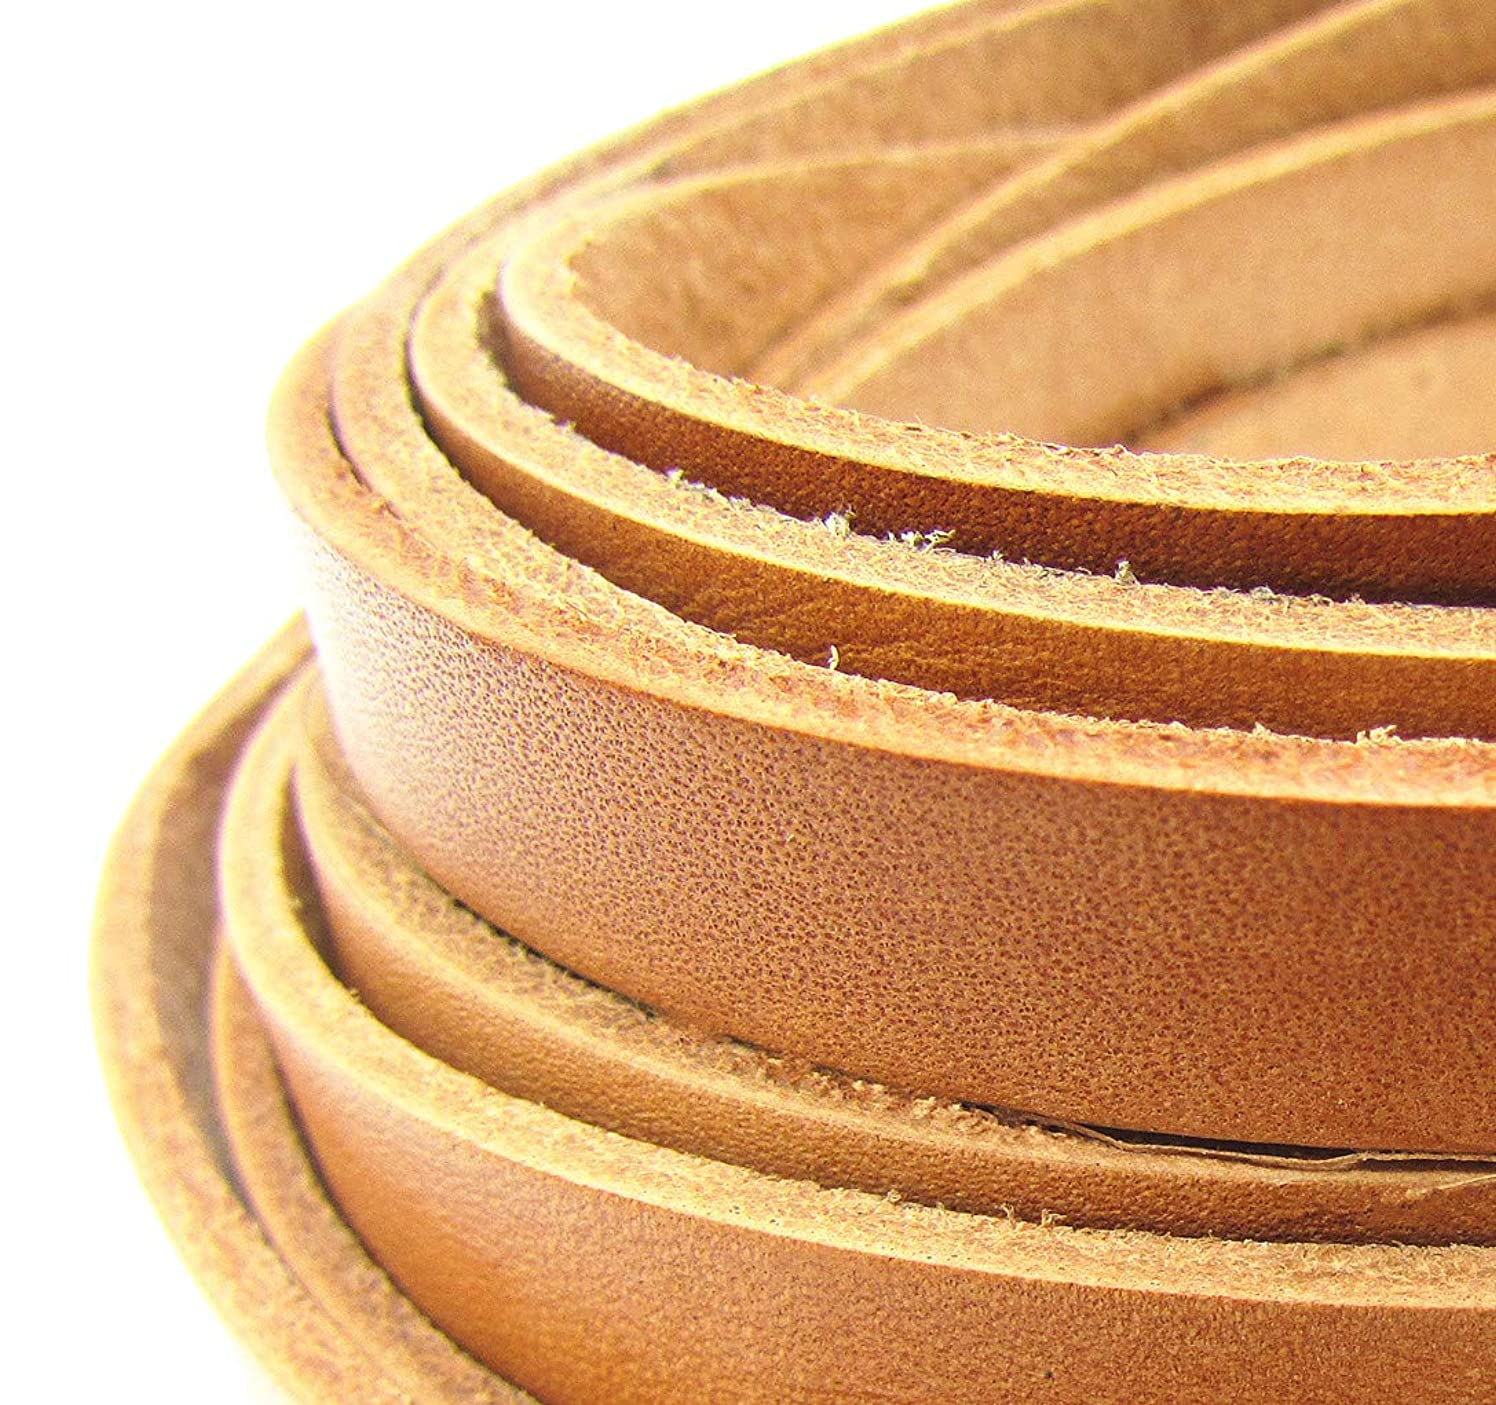 10x2mm Flat Genuine Leather Strip Cord DIY Rope Strings for Bracelet Necklace Jewelry Making 5 Meters (Natural)